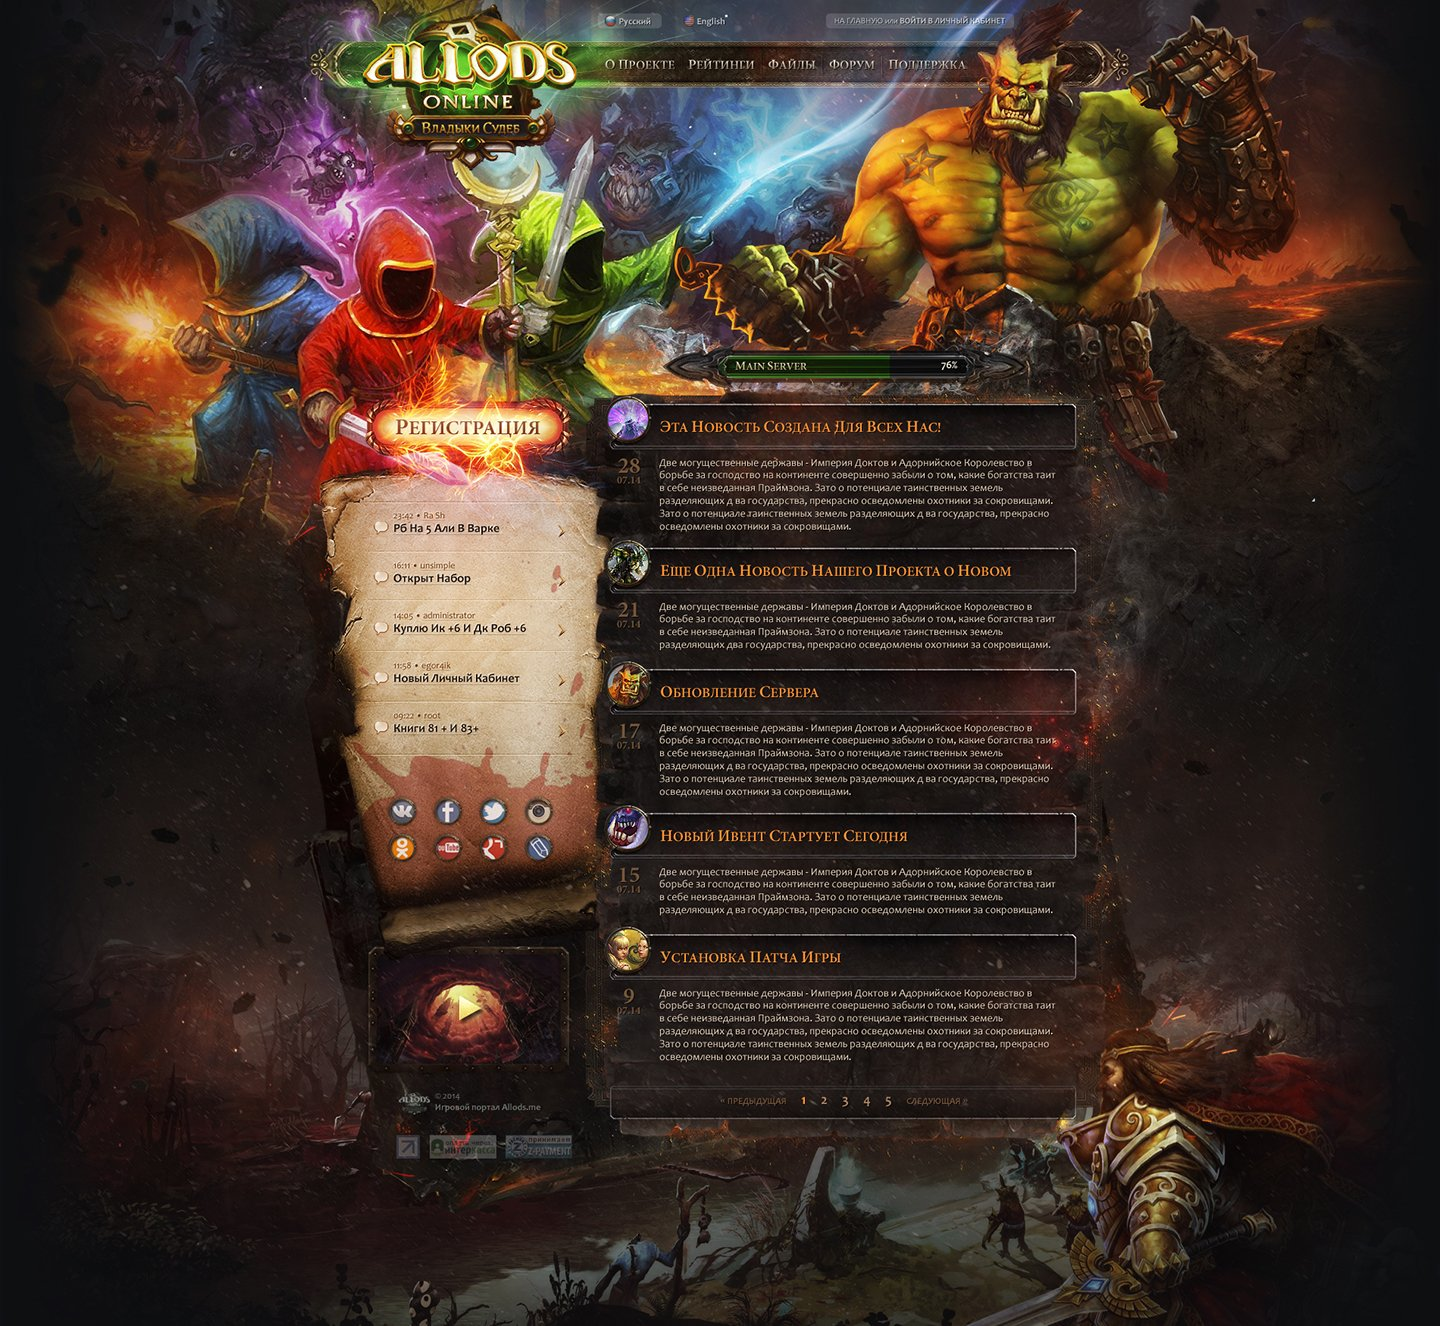 Allods Online Private Servers